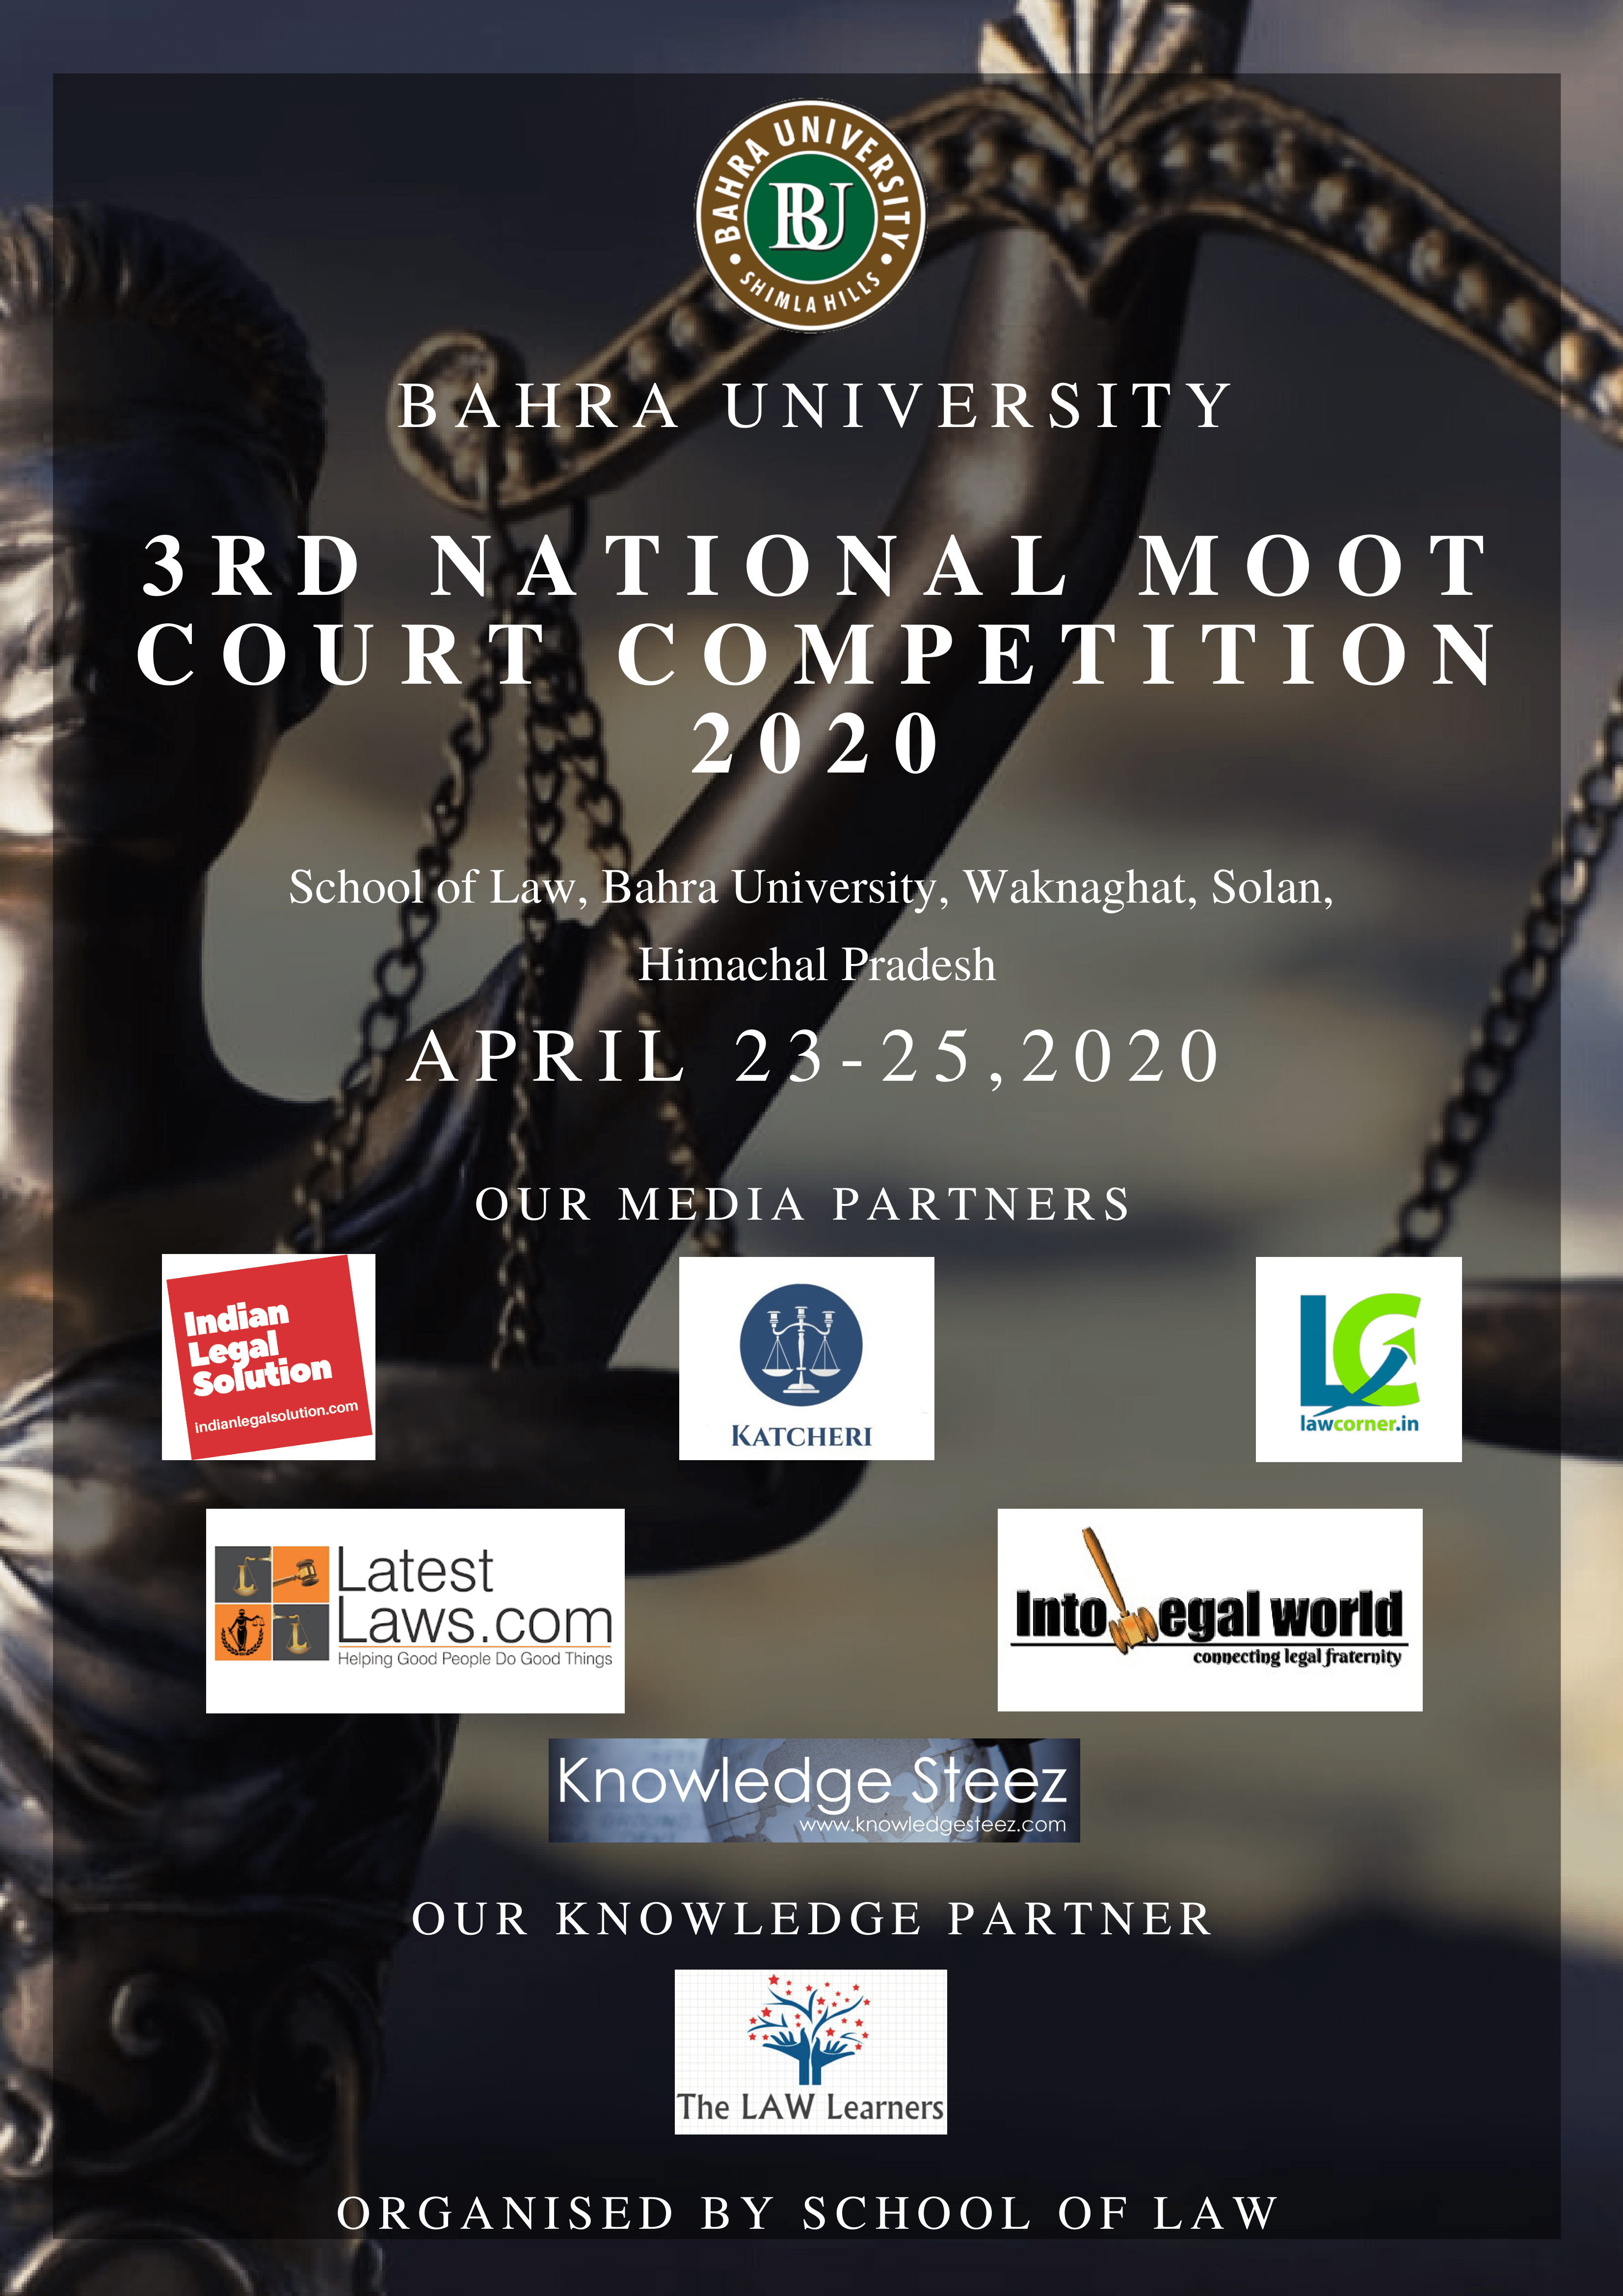 3rd National Moot Court Competition on Criminal and Constitutional Law at Bahra University